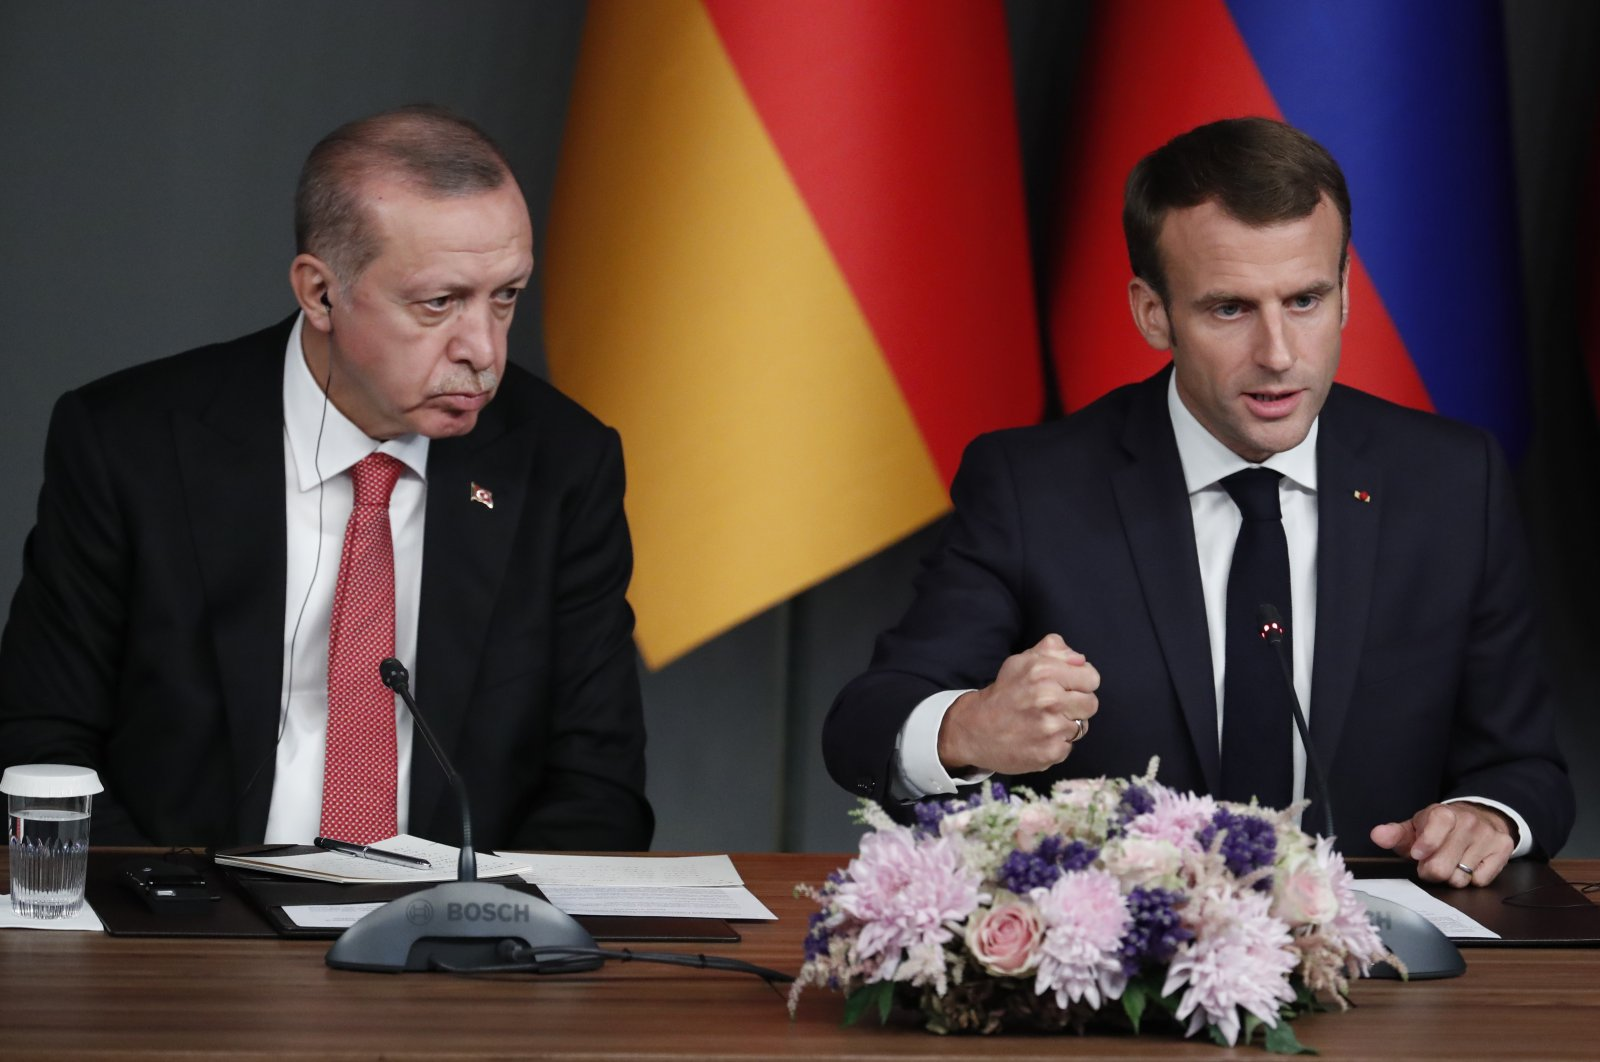 President Recep Tayyip Erdoğan (L) and French President Emmanuel Macron (R) attend a news conference during the Syria summit in Istanbul, Turkey, Oct. 27, 2018. (EPA File Photo)